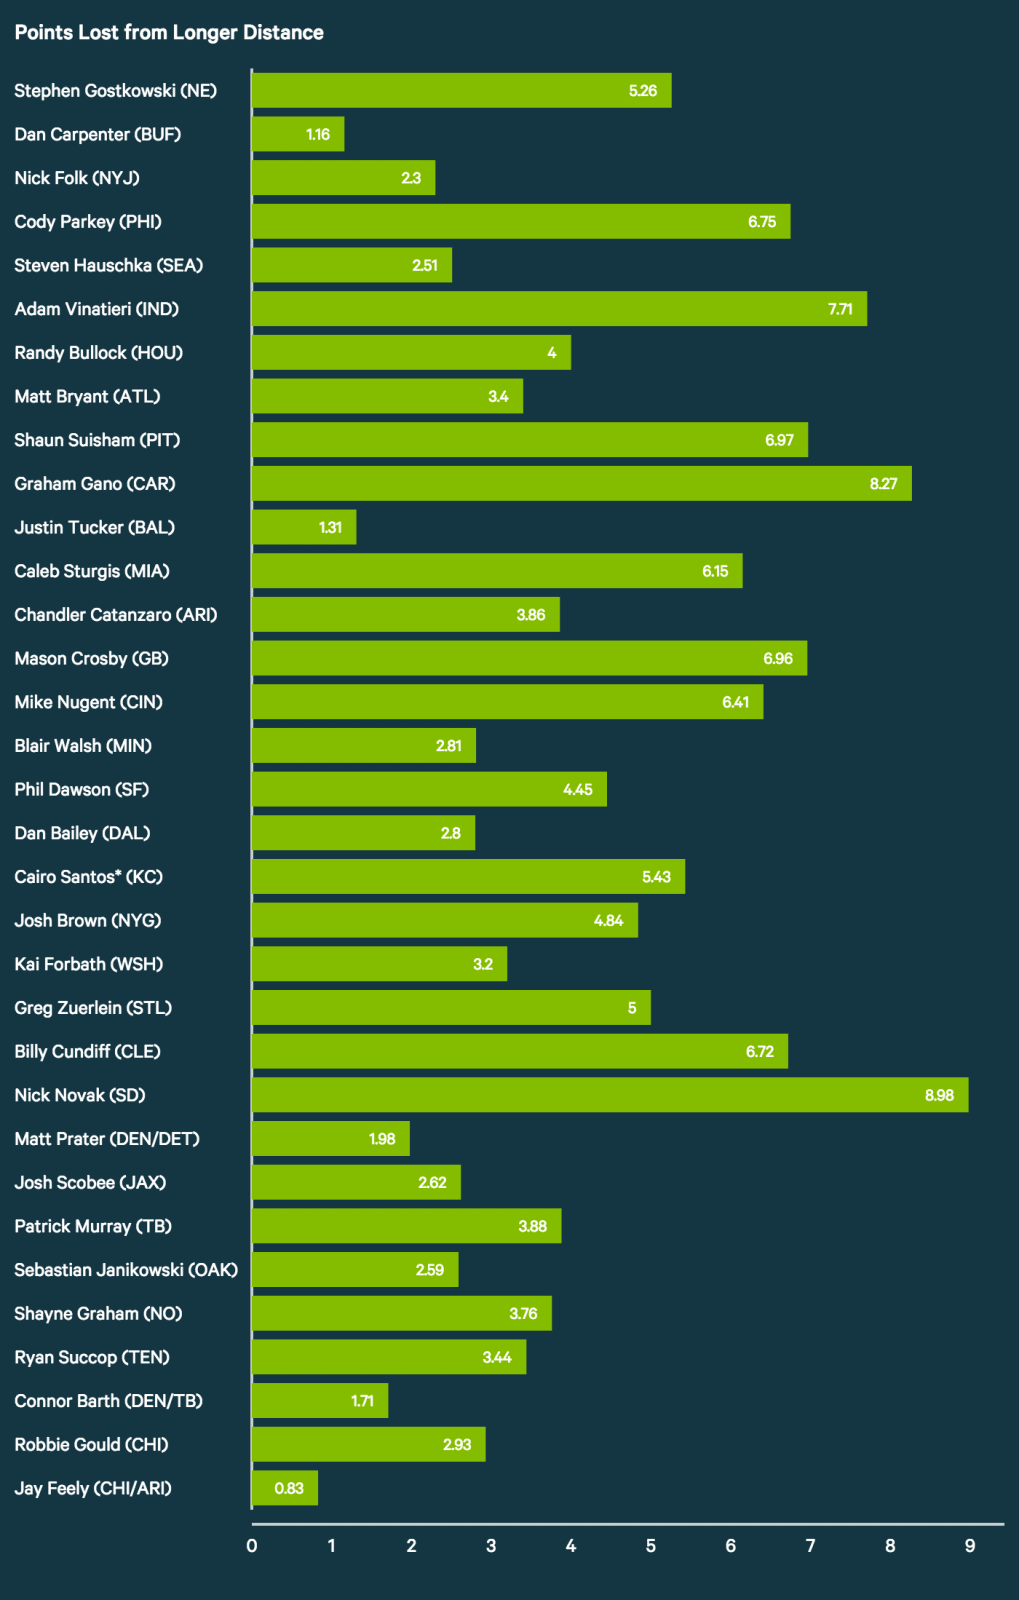 Points Lost from Longer Distance